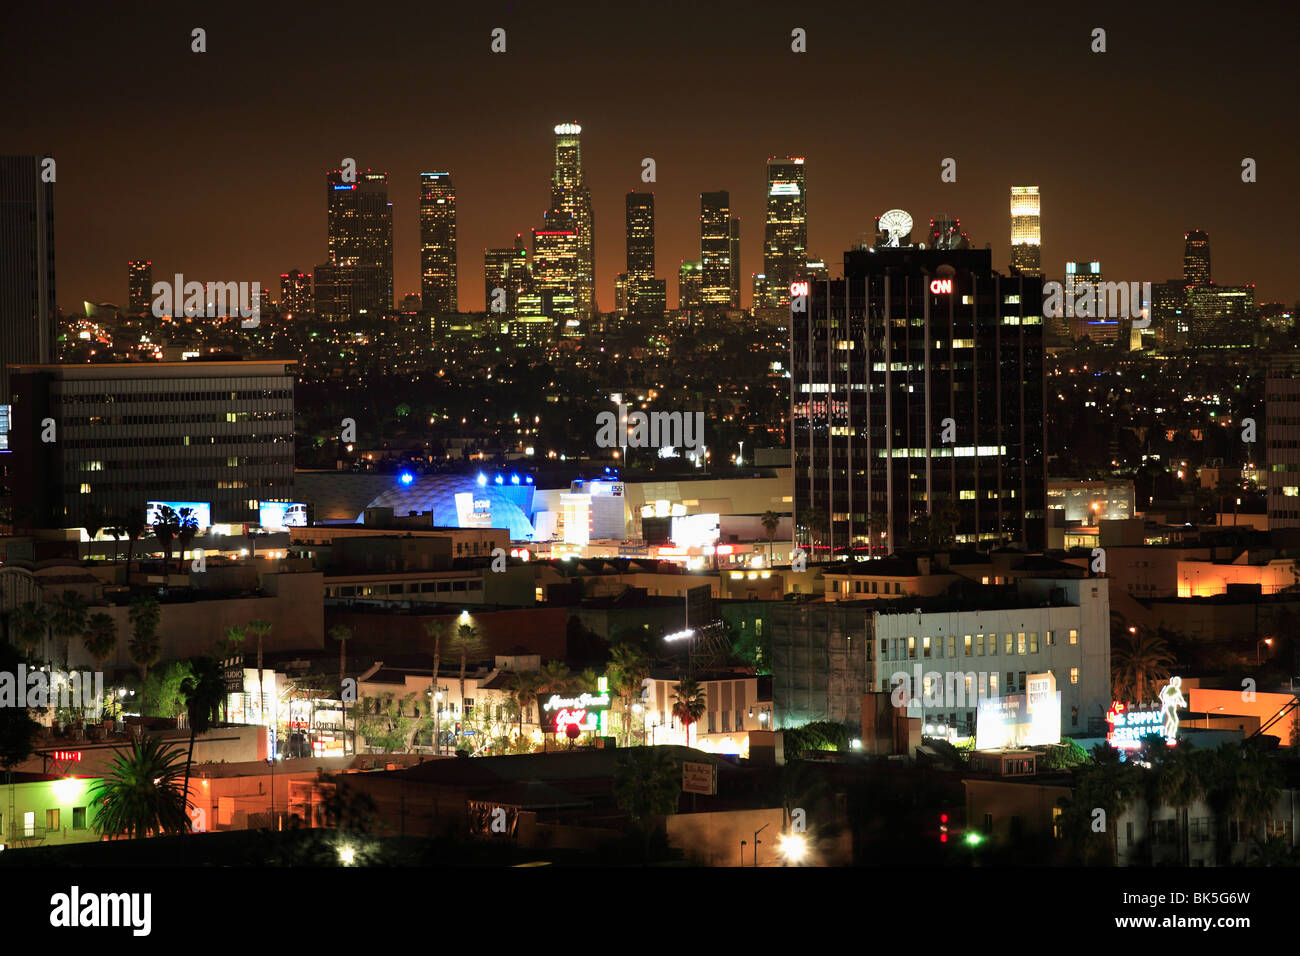 City at night, Los Angeles, California, United States of America, North America - Stock Image